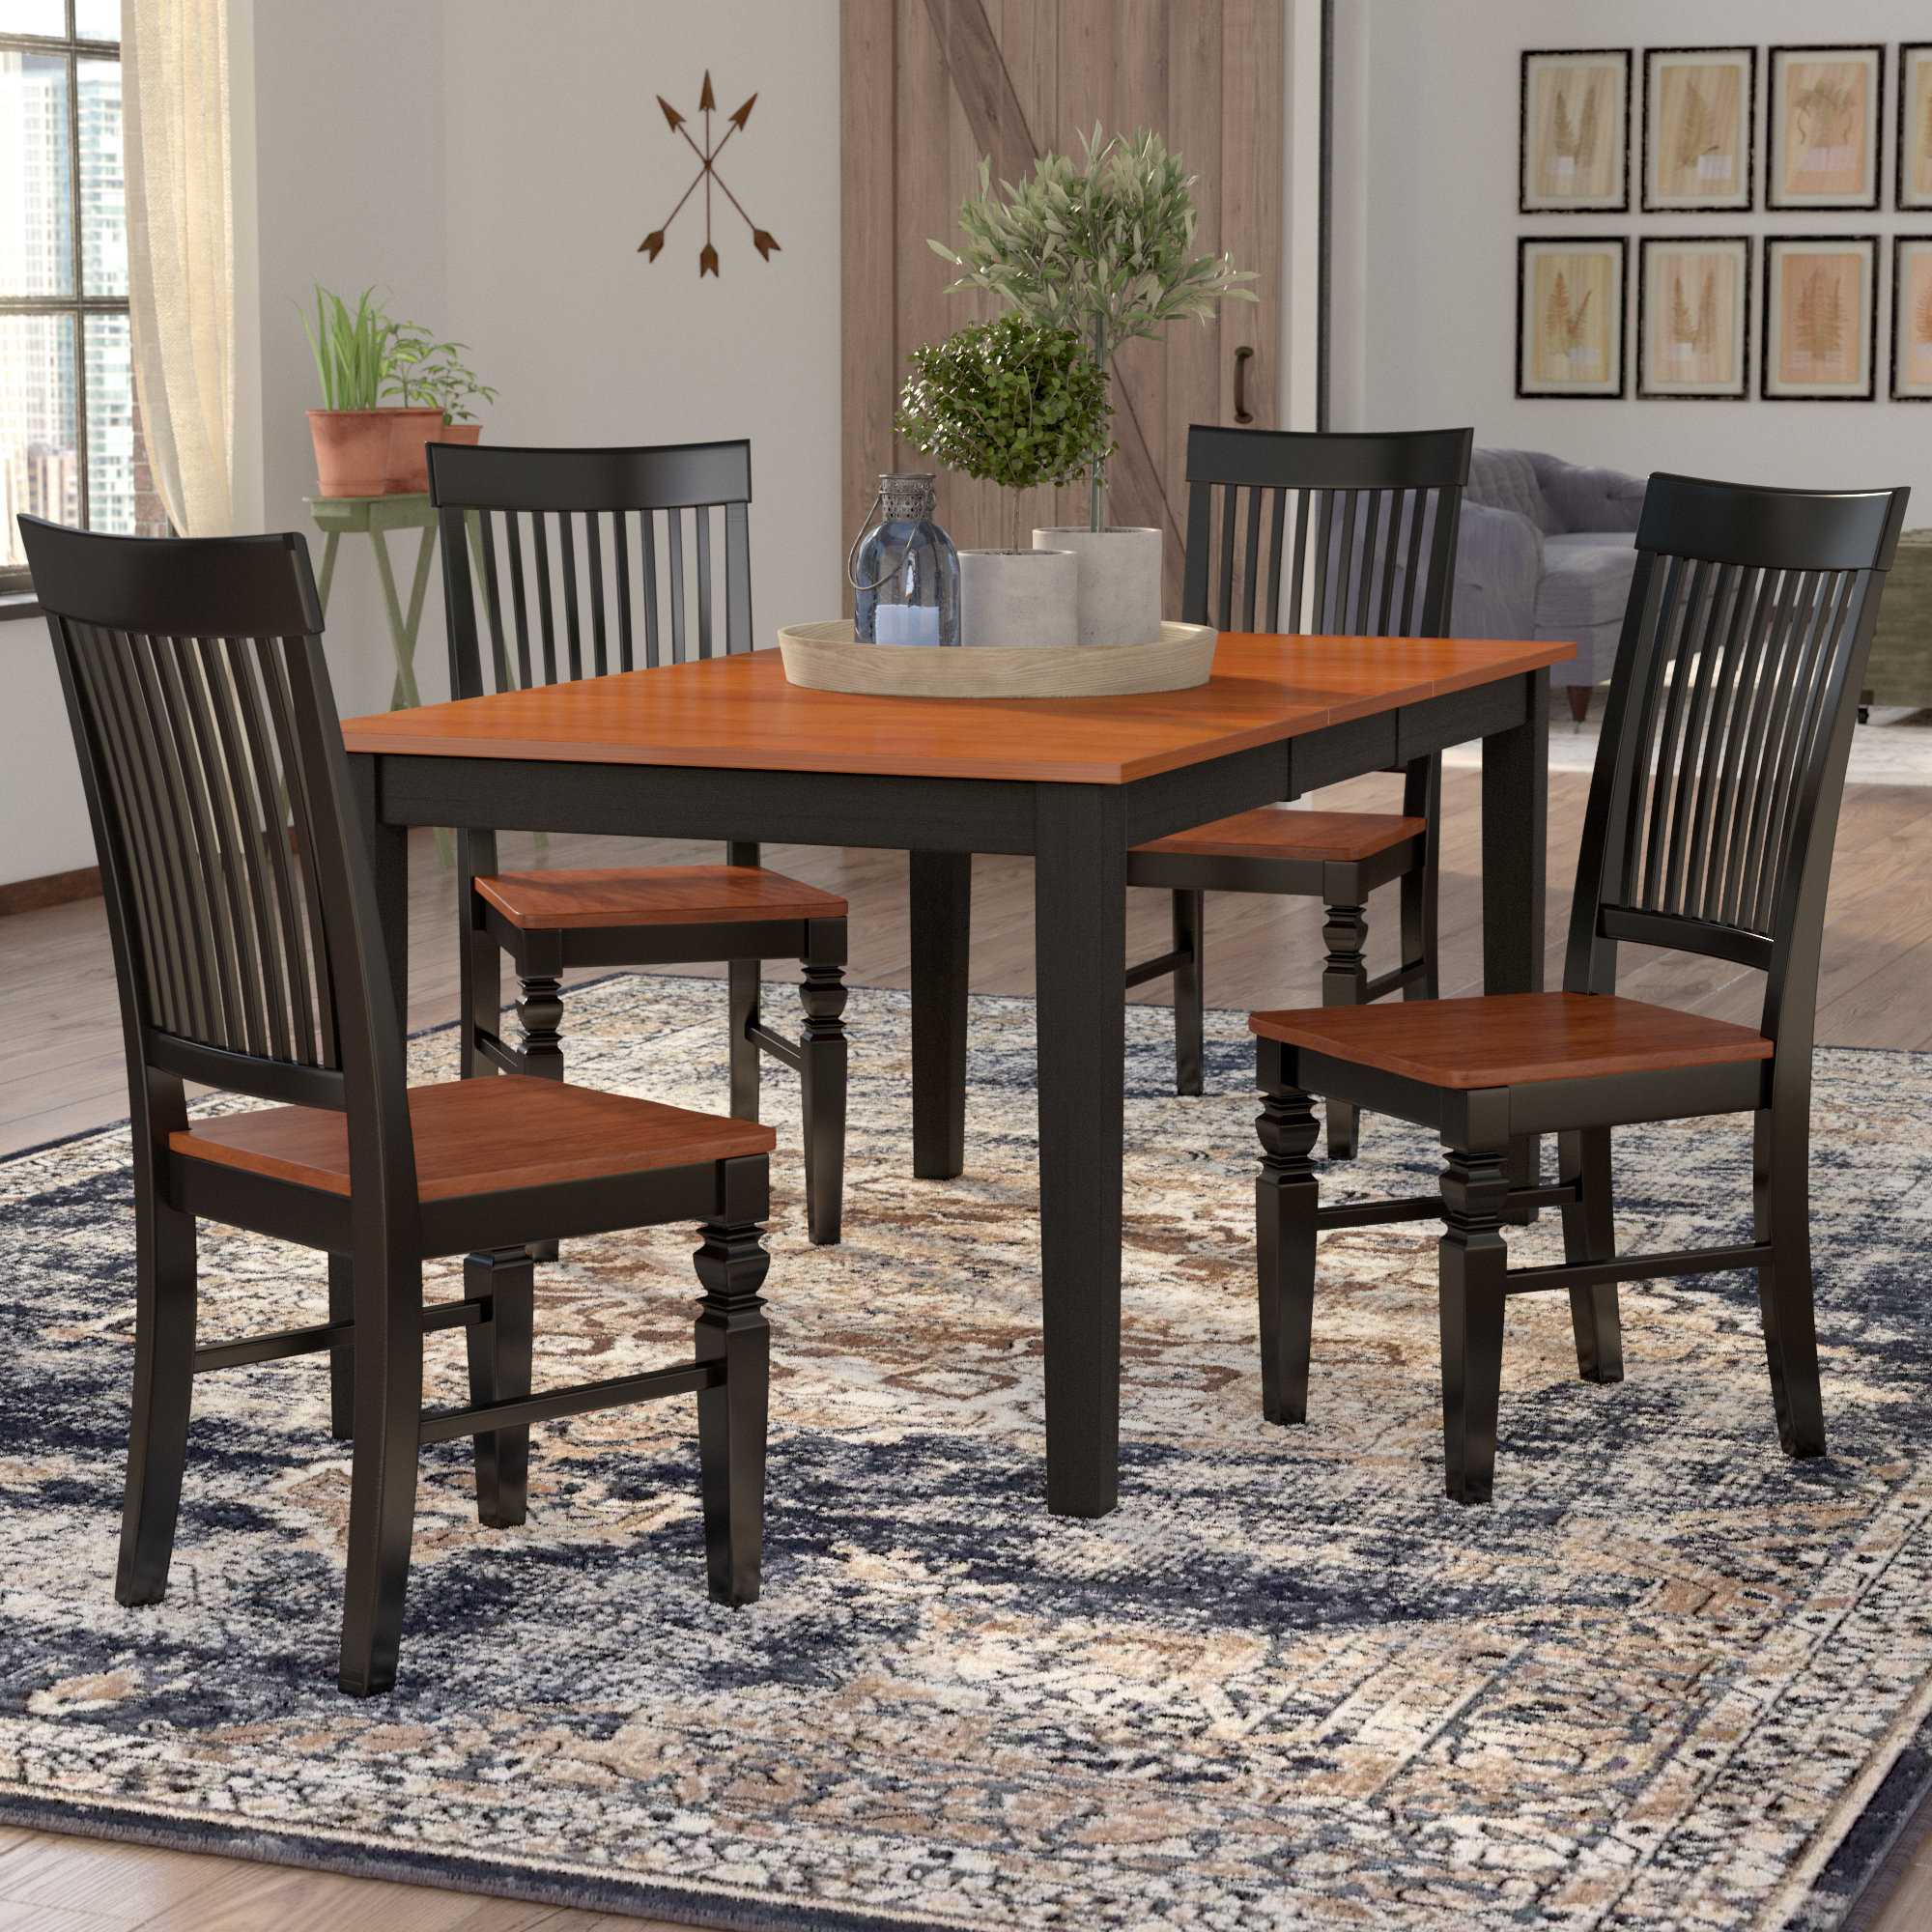 Pattonsburg 5 Piece Dining Sets Throughout Most Recently Released August Grove Pillar 5 Piece Extendable Breakfast Nook Dining Set (View 13 of 25)